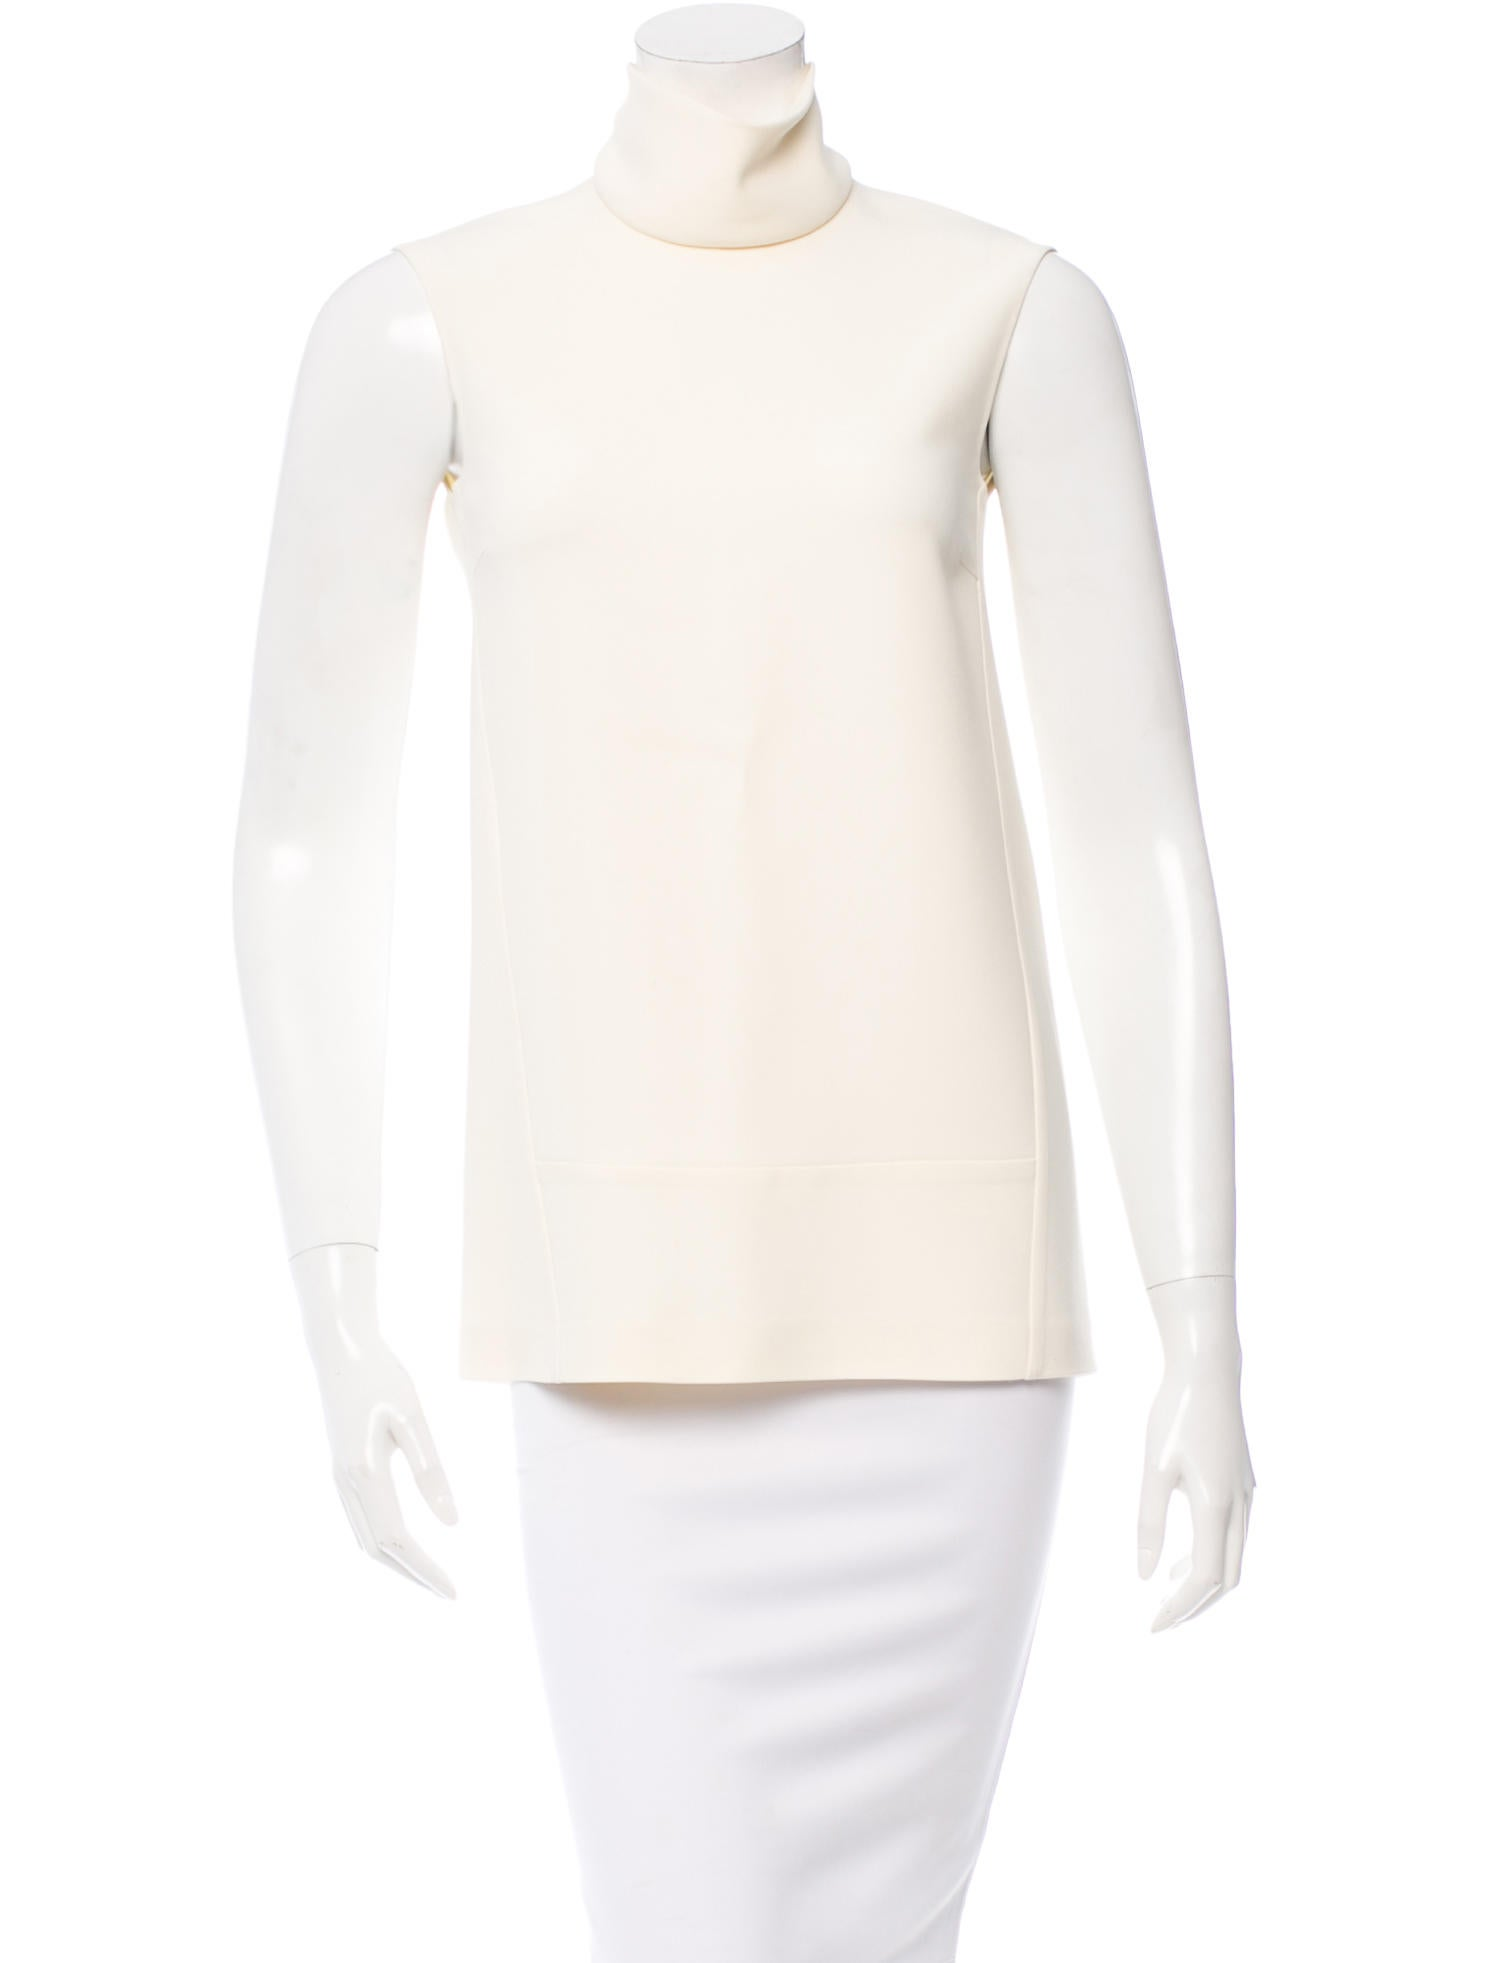 Calvin klein collection sleeveless mock turtleneck top for Sleeveless mock turtleneck shirts